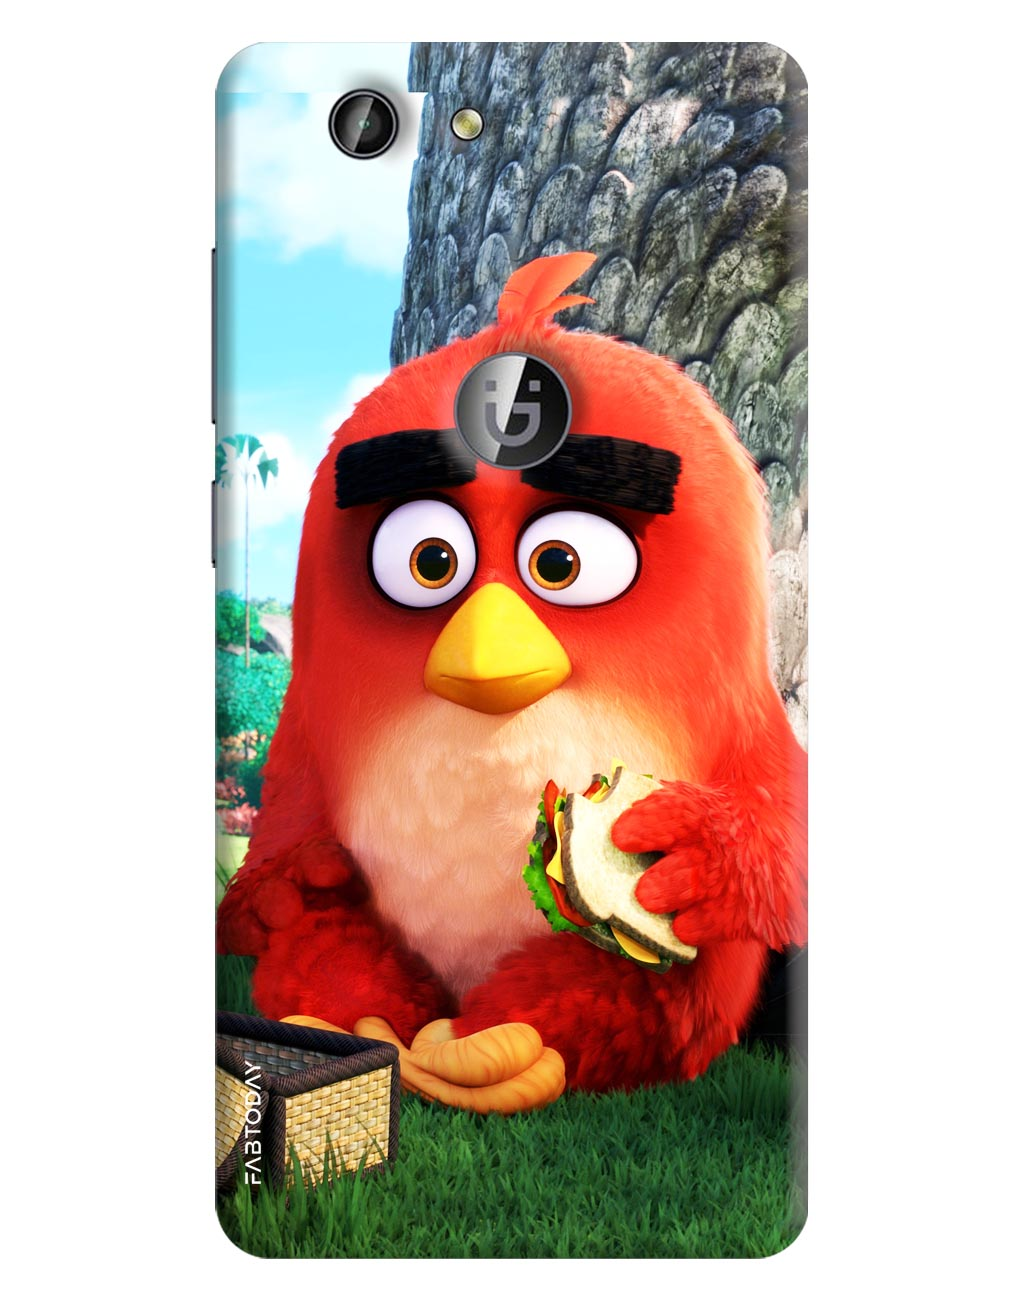 Angry Birds Back Cover for Gionee F103 Pro